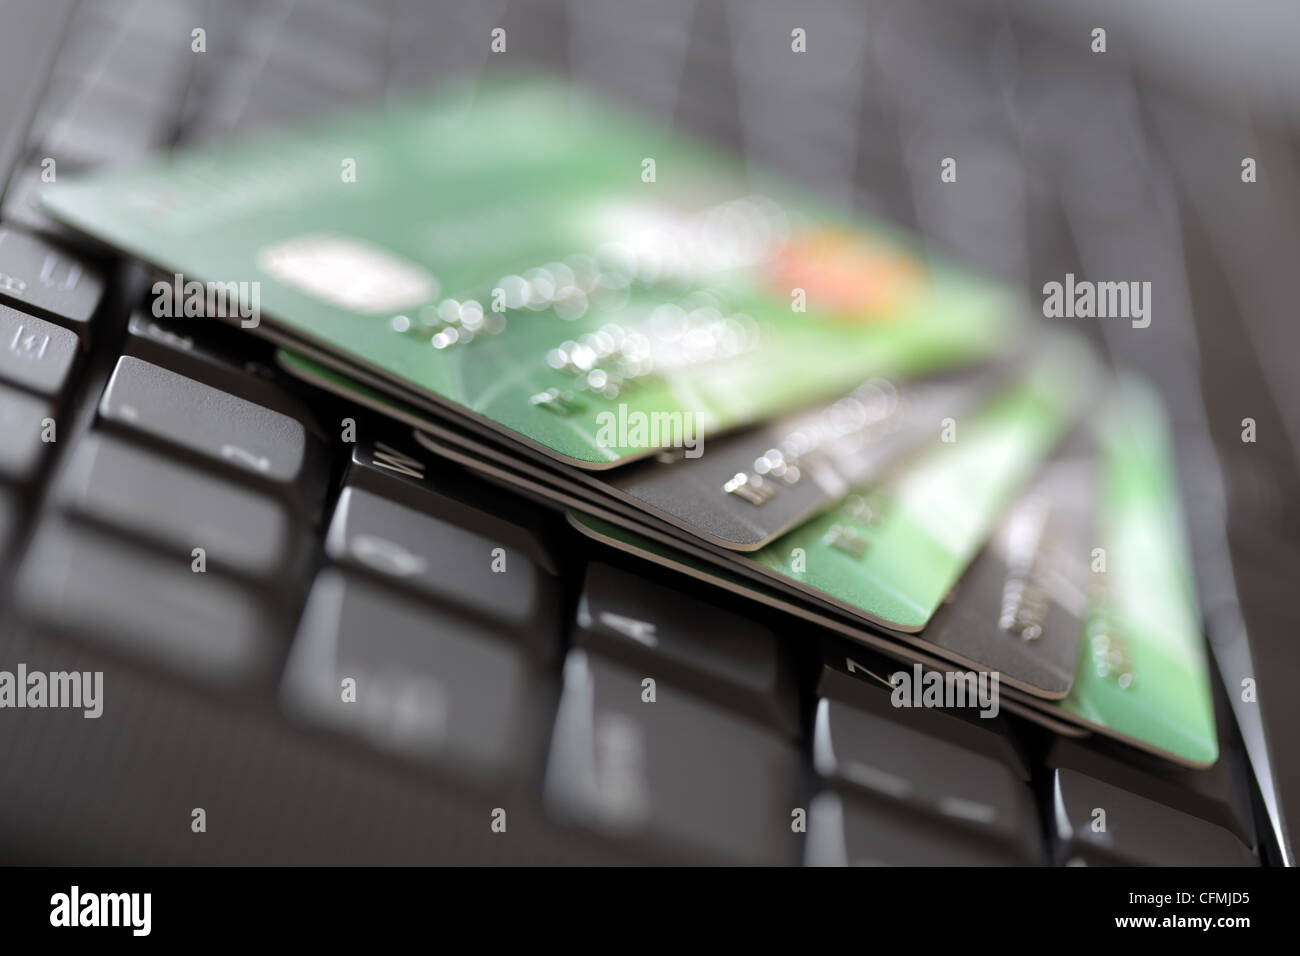 Credit cards on computer keyboard - Stock Image